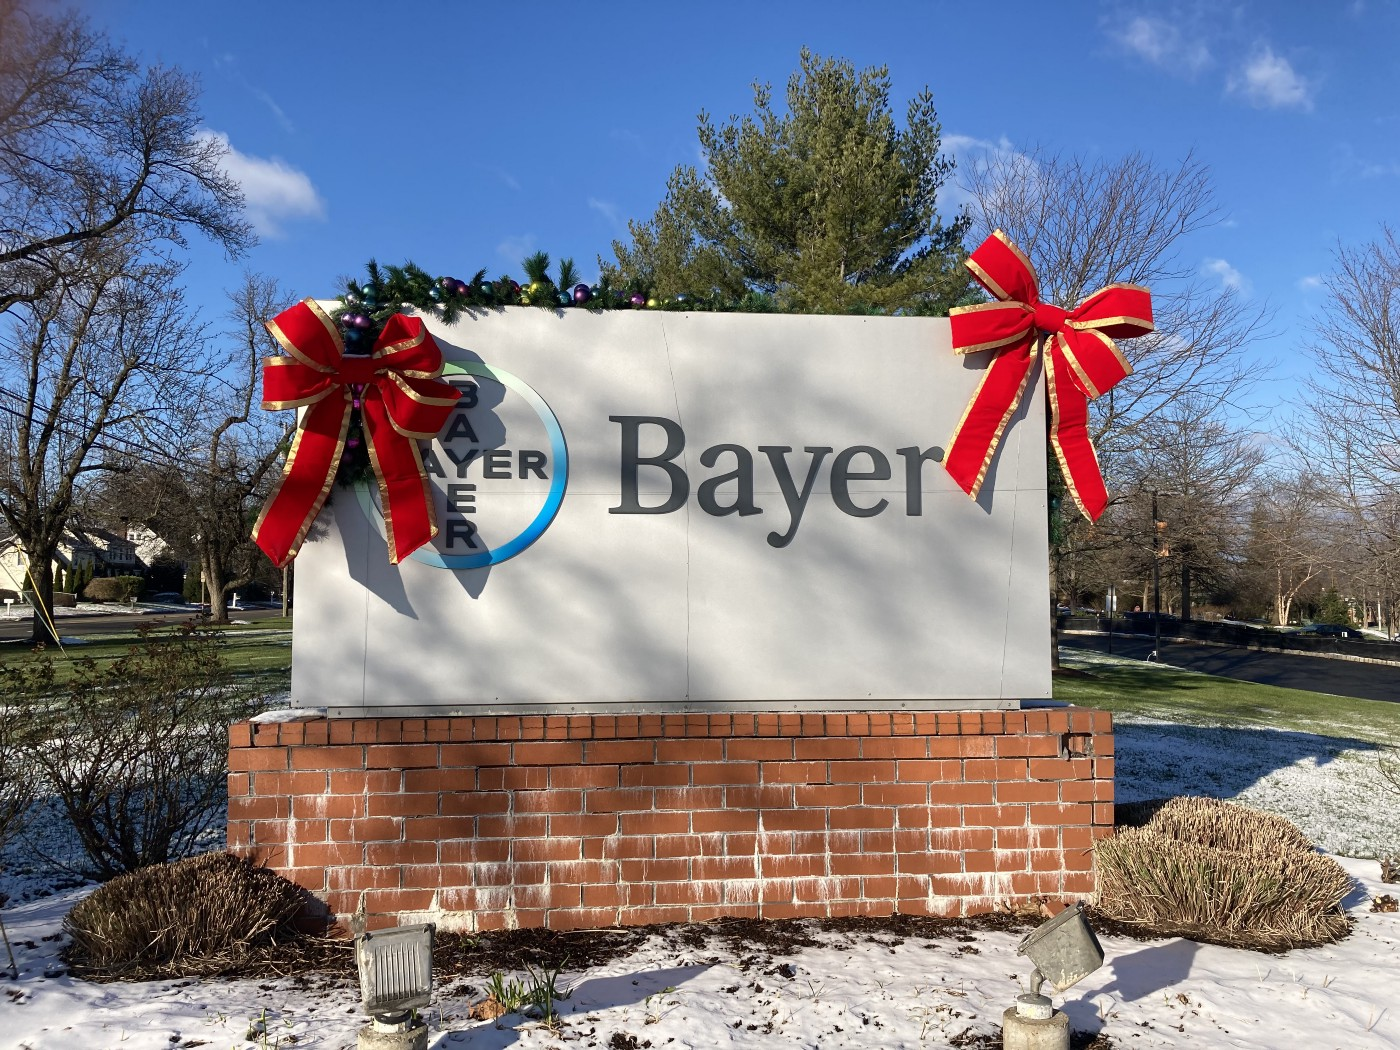 The front lawn of Bayer's US headquarters with a sign, which fittingly resembles a tombstone.